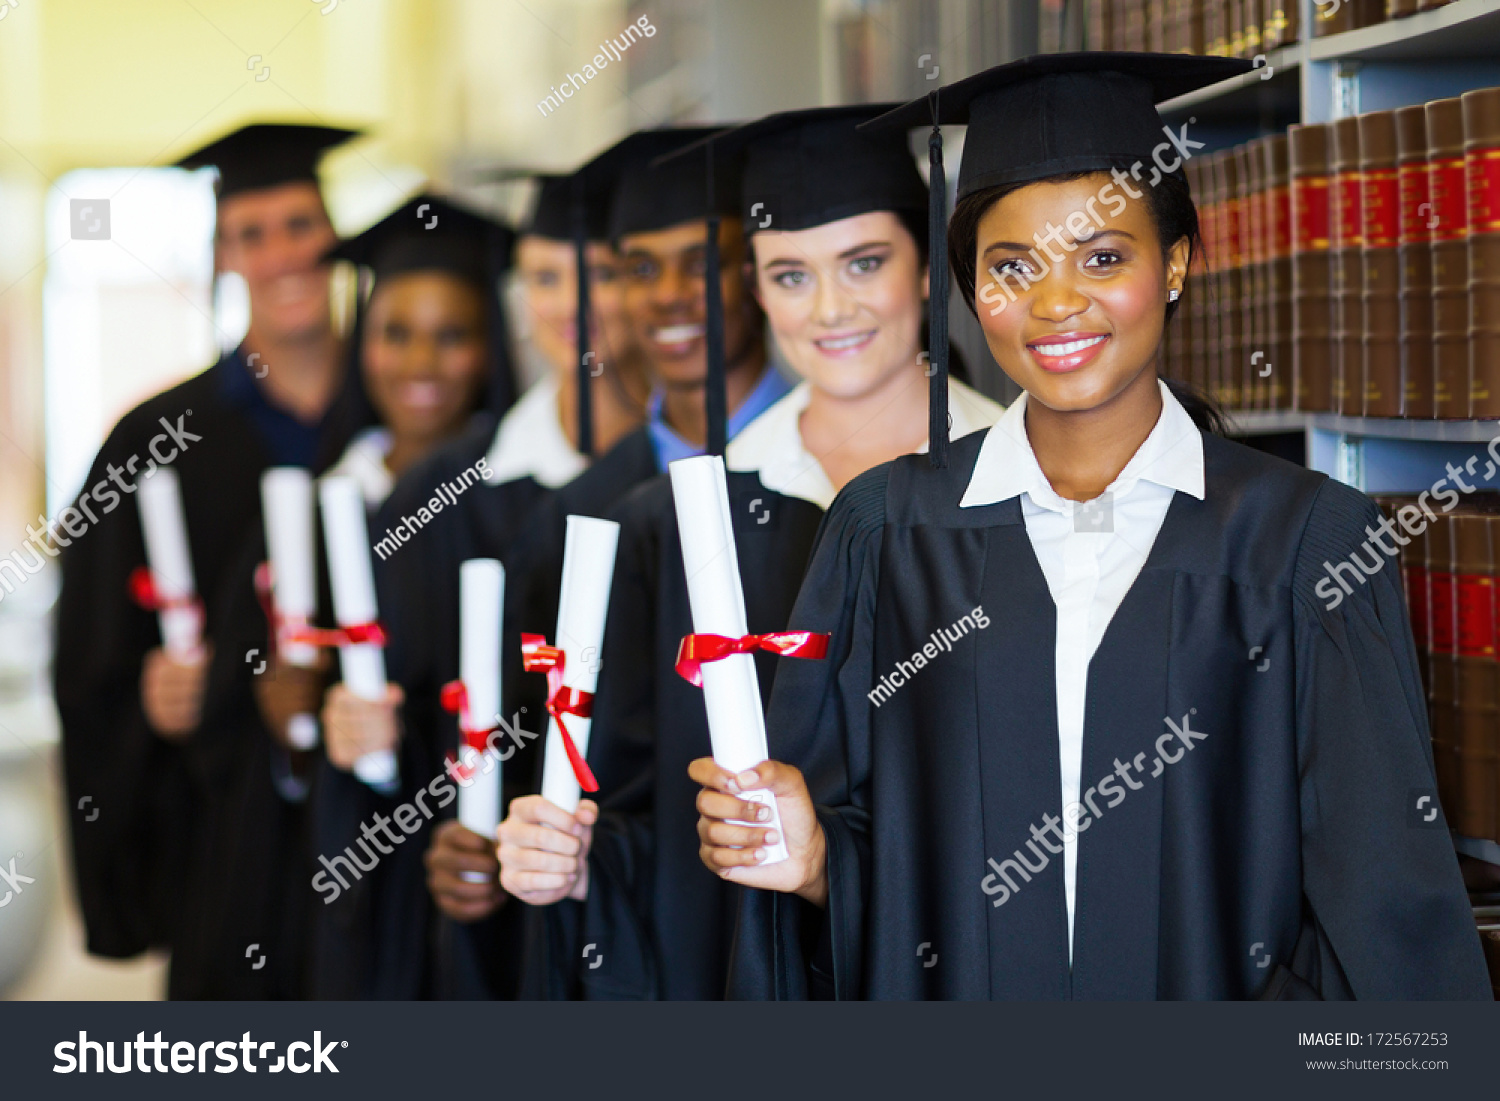 group happy graduates holding diploma library stock photo  group of happy graduates holding diploma in library